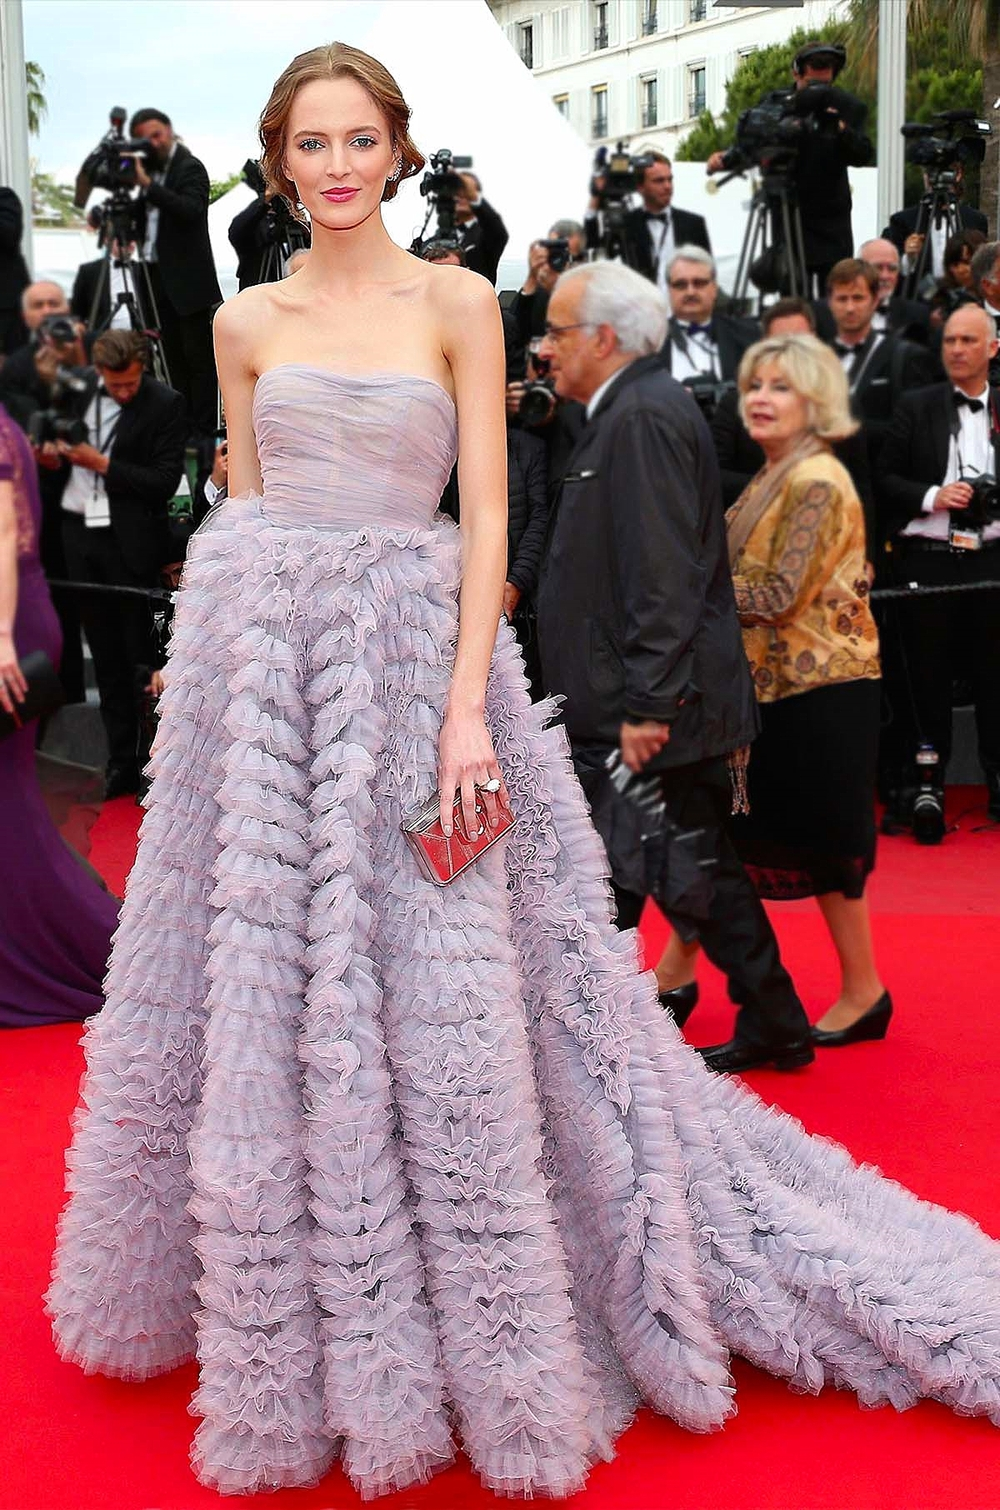 Daria Strokous in  Luisa Beccaria  with Atelier Swarovski jewels & Paula Cademartori clutch       vogue.co.uk/ Getty